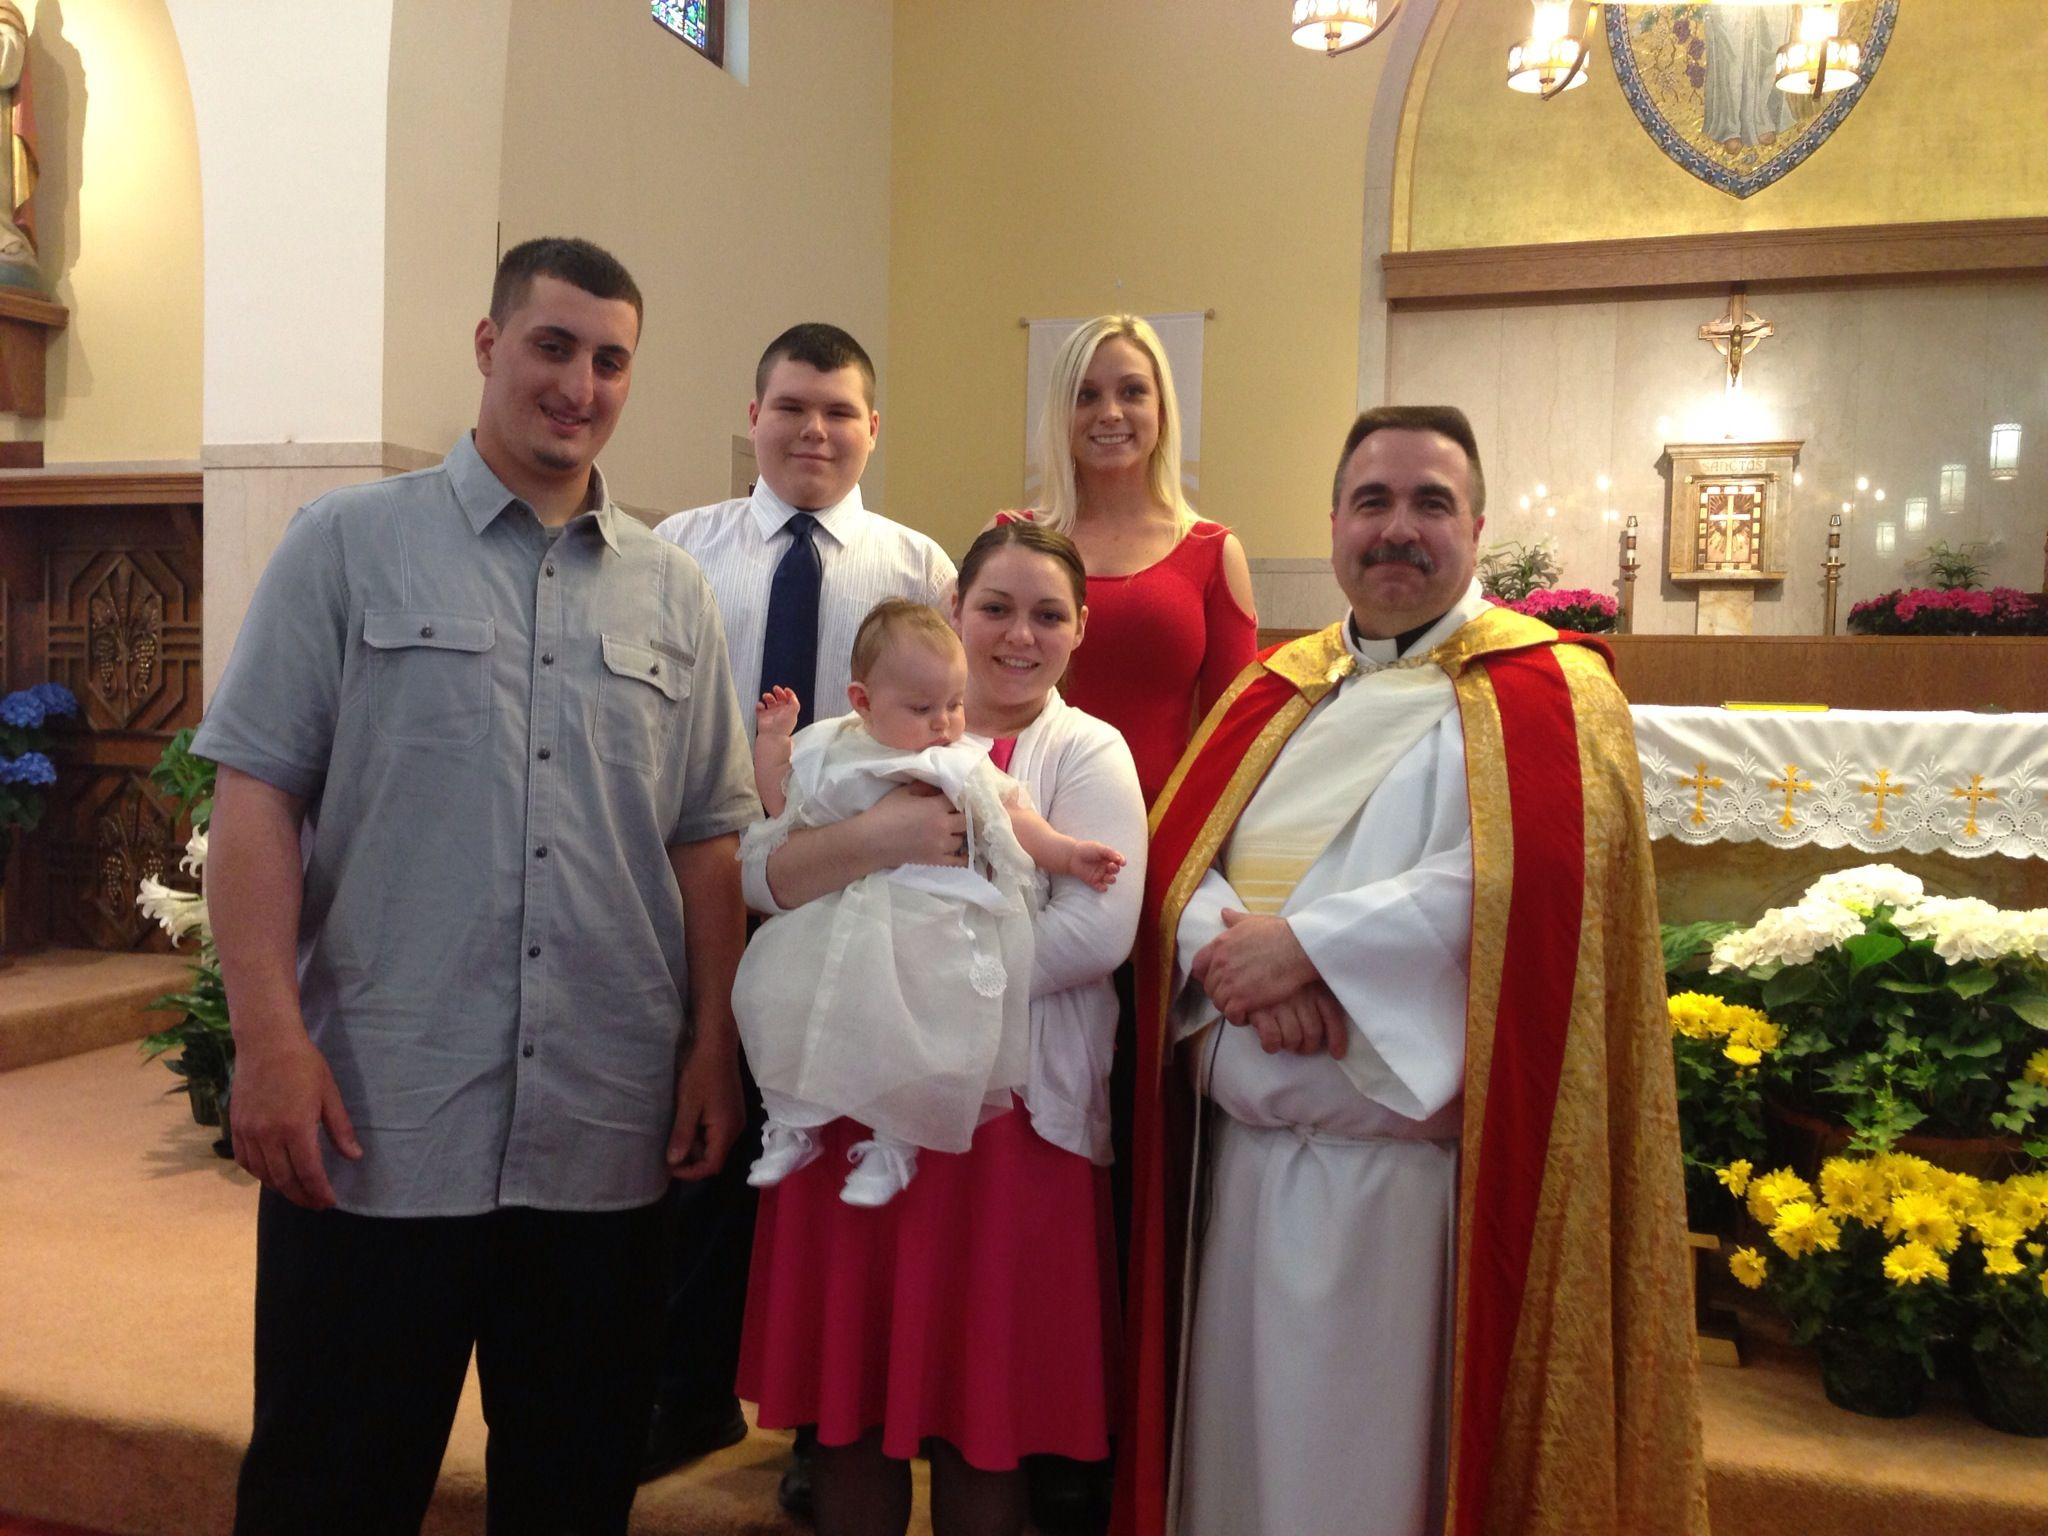 kaliahna marie cirrone baptized st margaret church baptized st margaret church burlington ma parents richard and katie